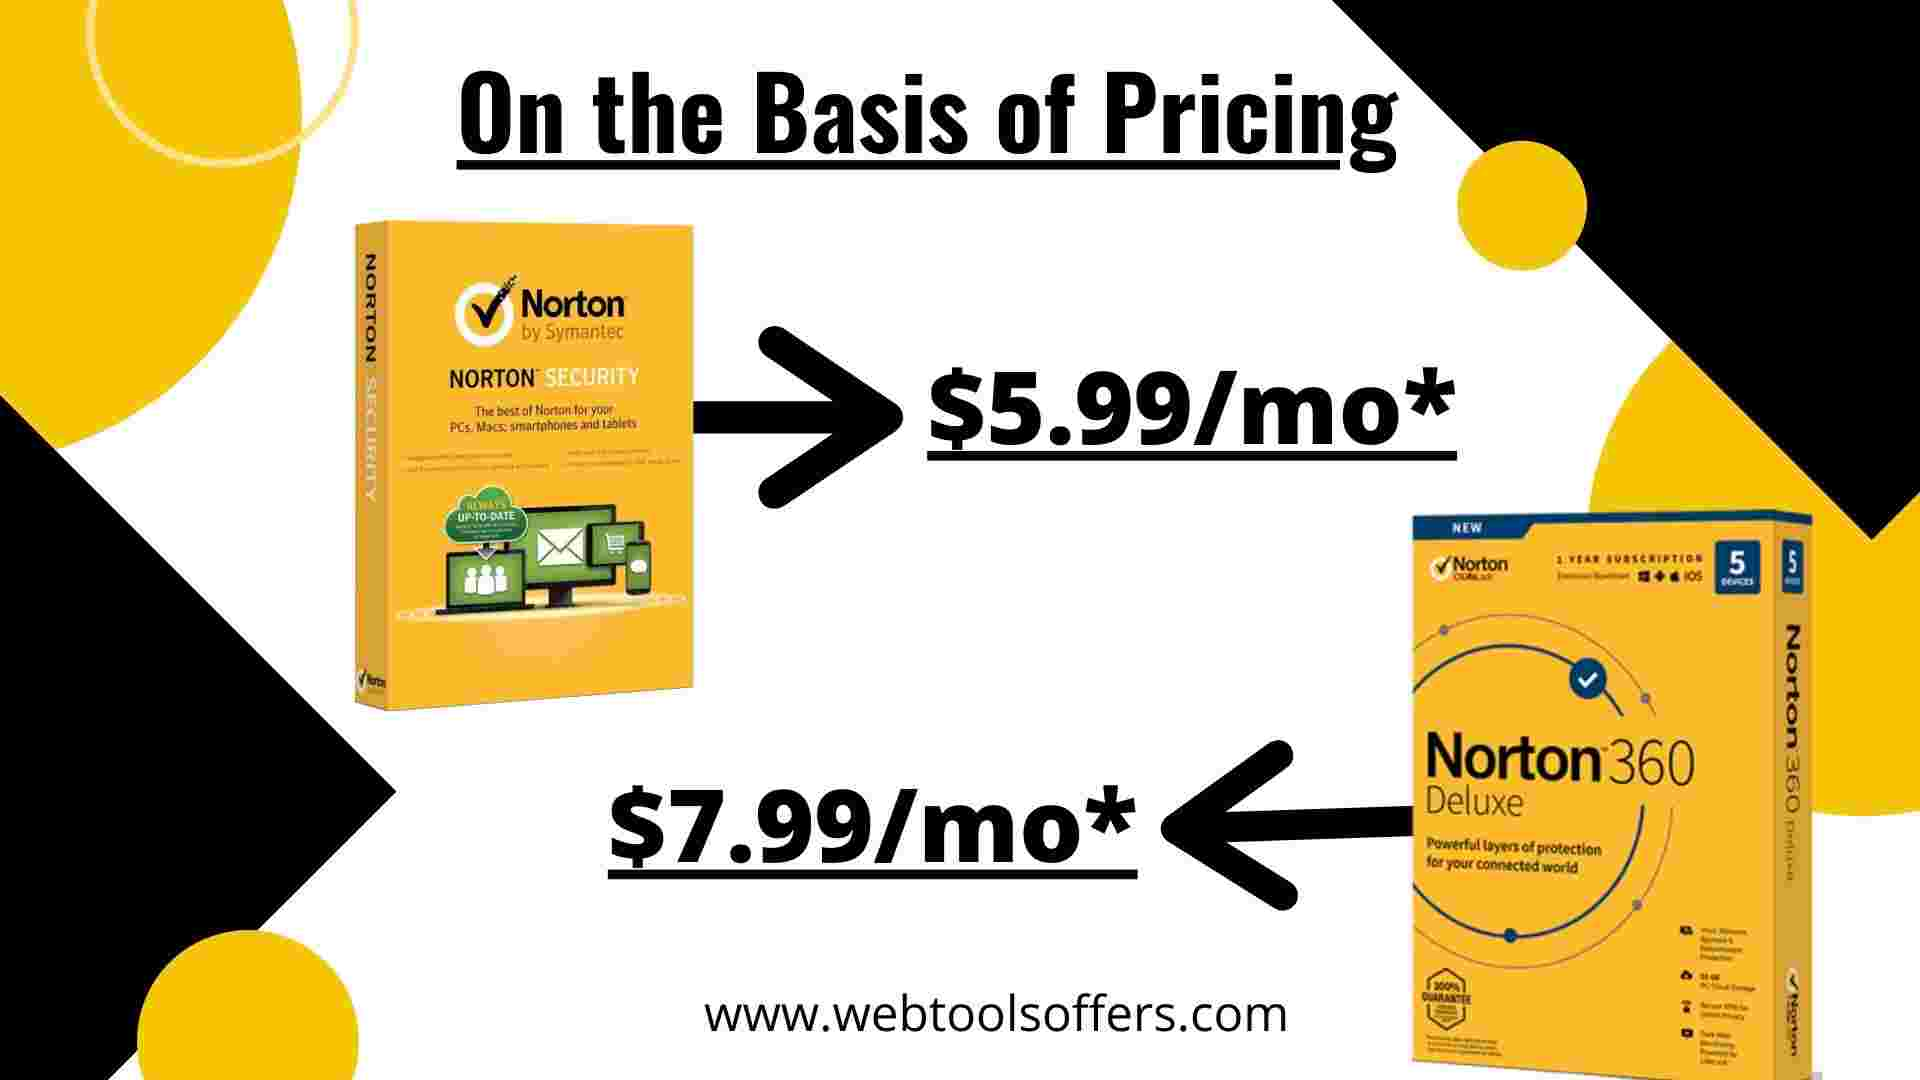 Norton 360 VS norton Security- Pricing Factor